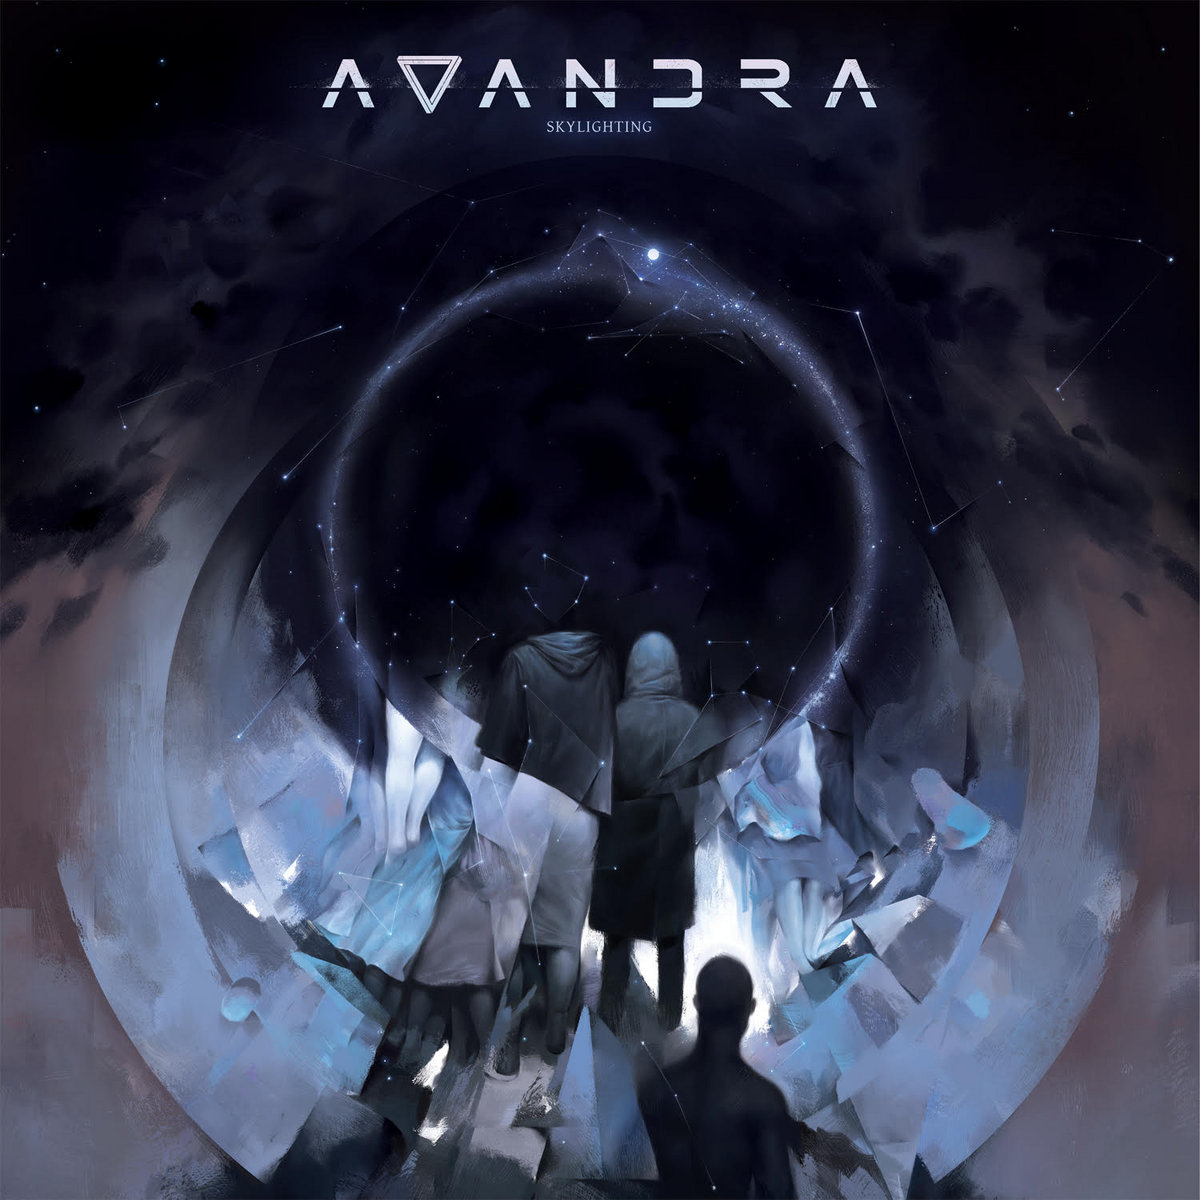 Avandra: Skylighting